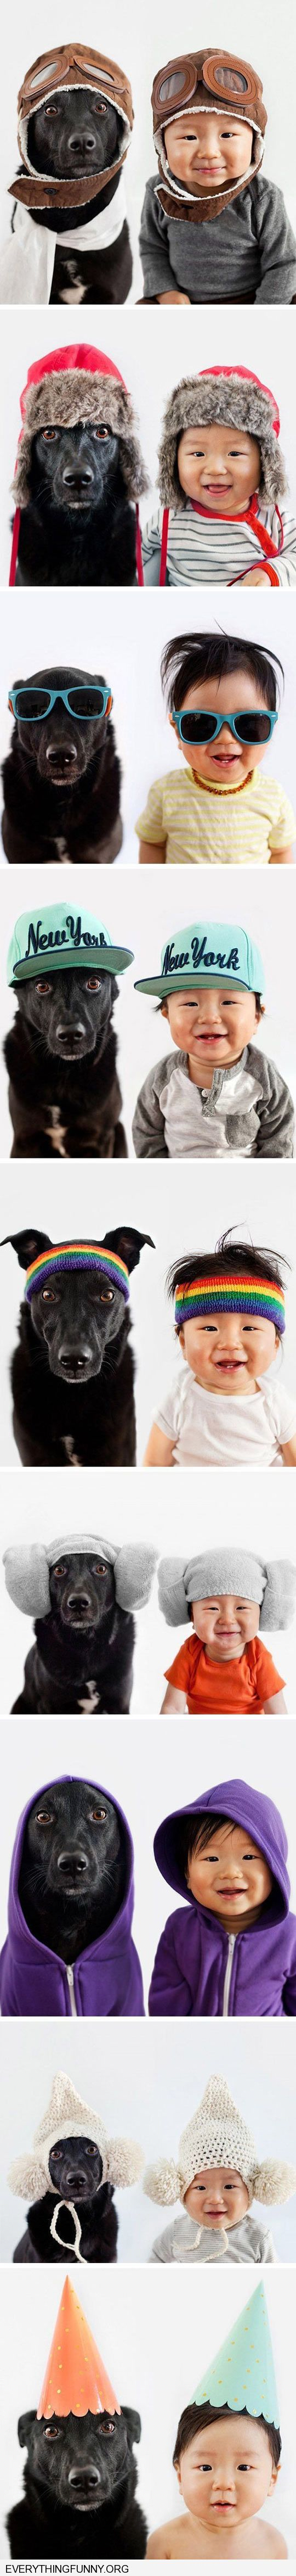 funny kids next to dogs matching hats